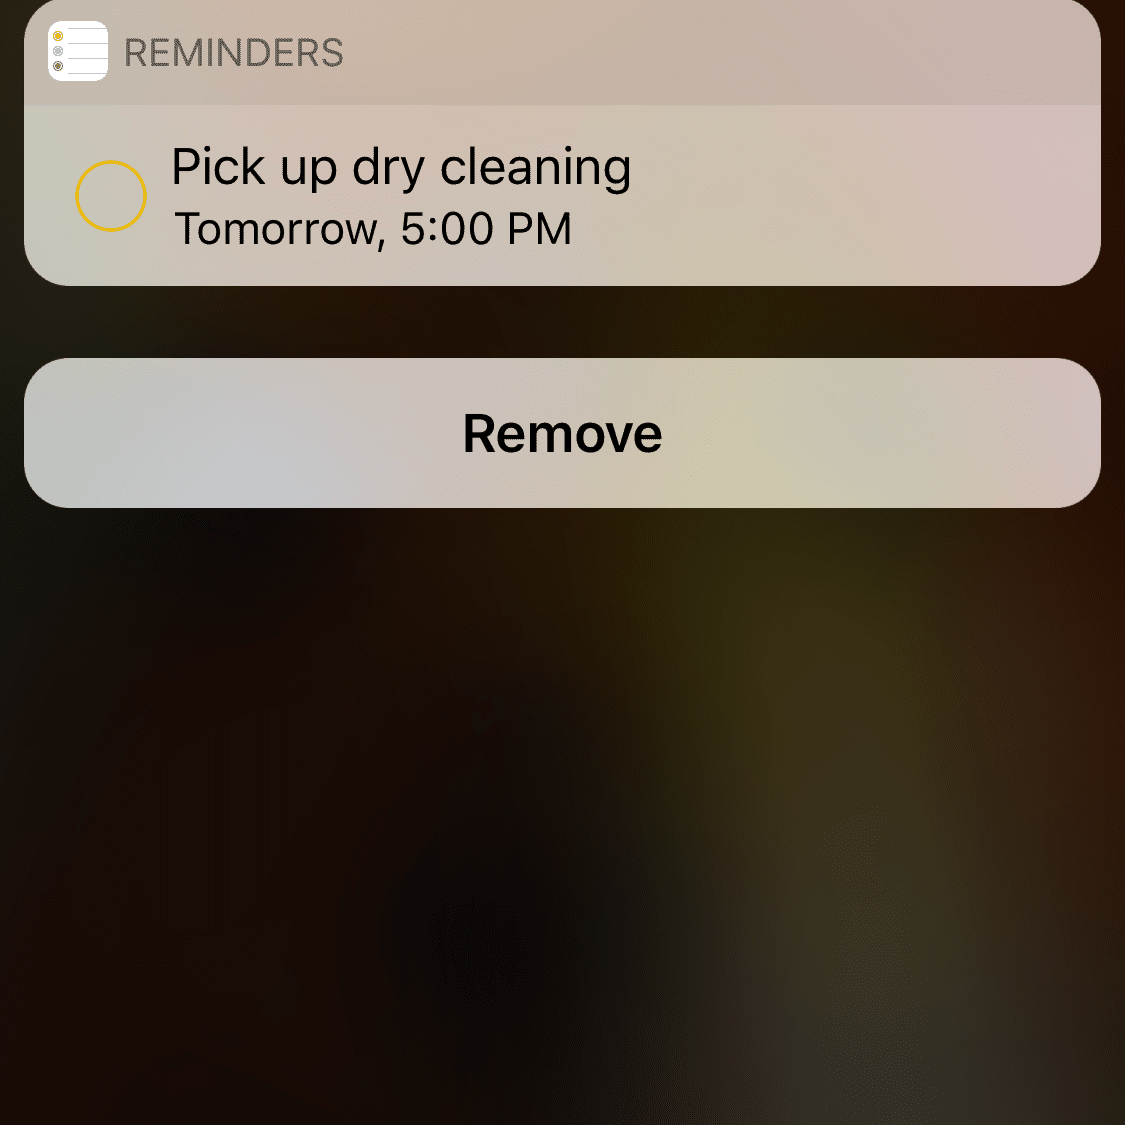 Create Reminders and list items using Siri on your iPhone